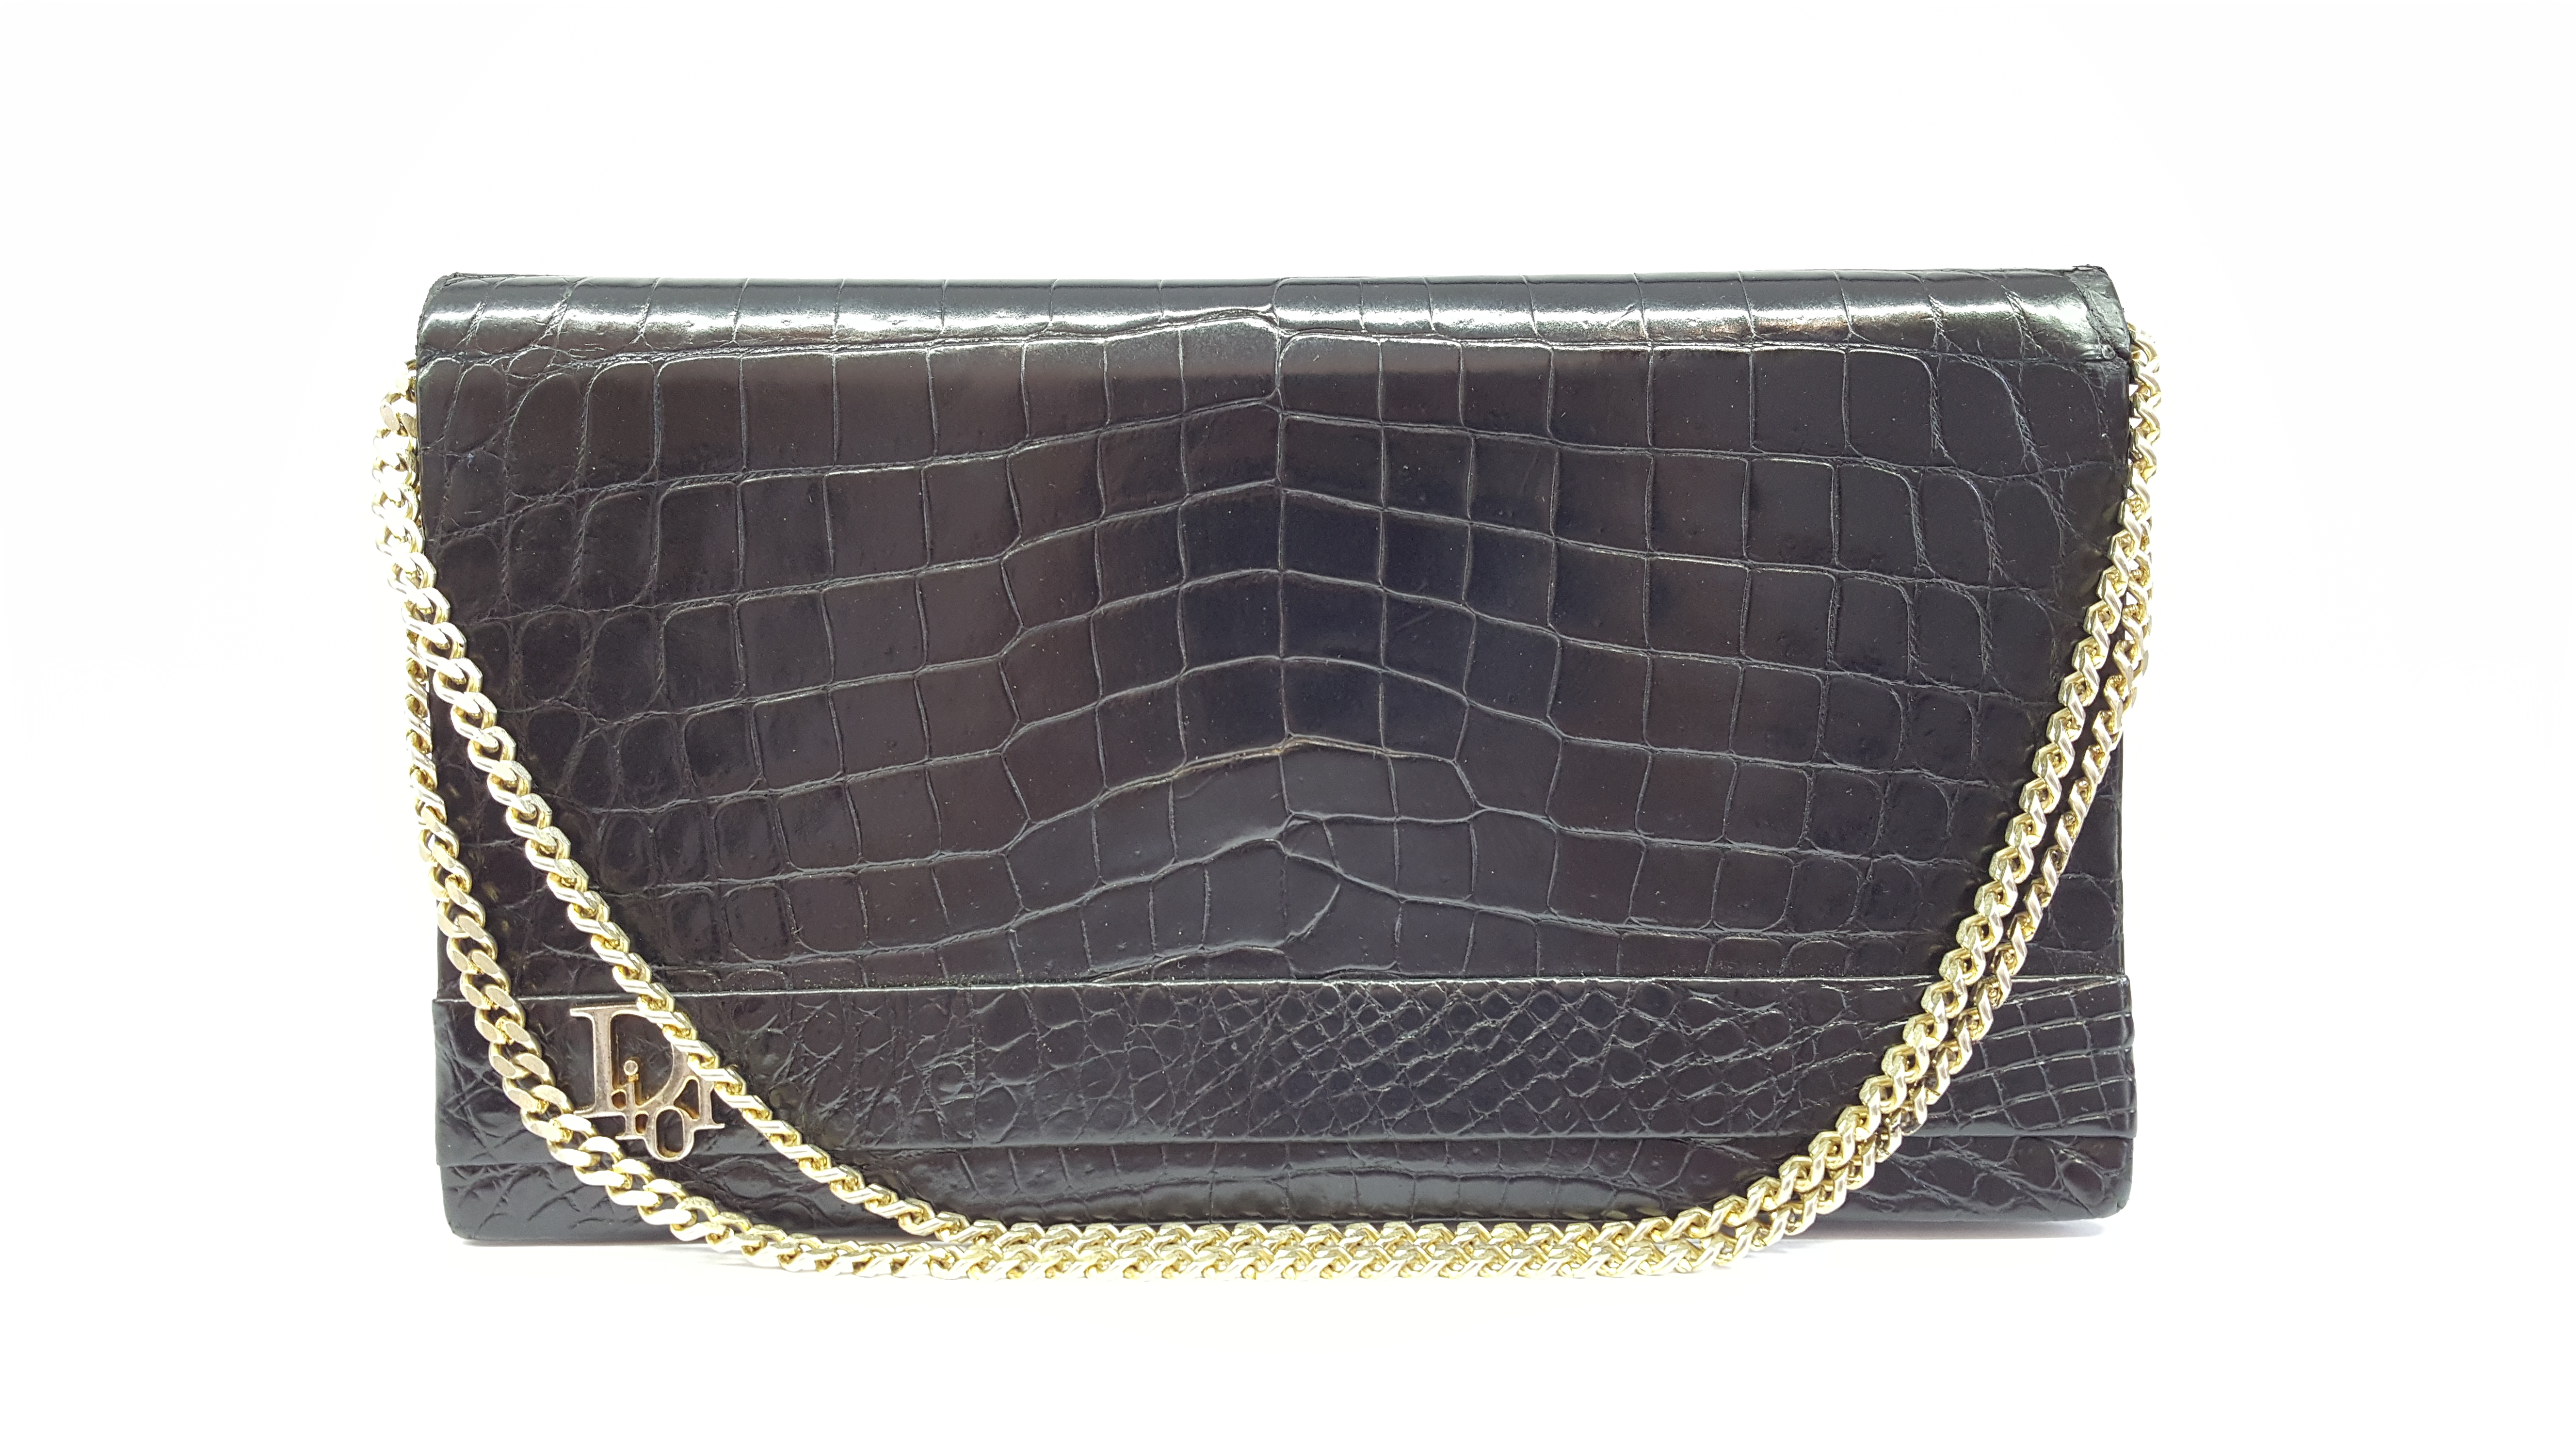 Christian Dior vintage crocodile clutch bag - Vintage Shop in Mykonos 958162ee682f4